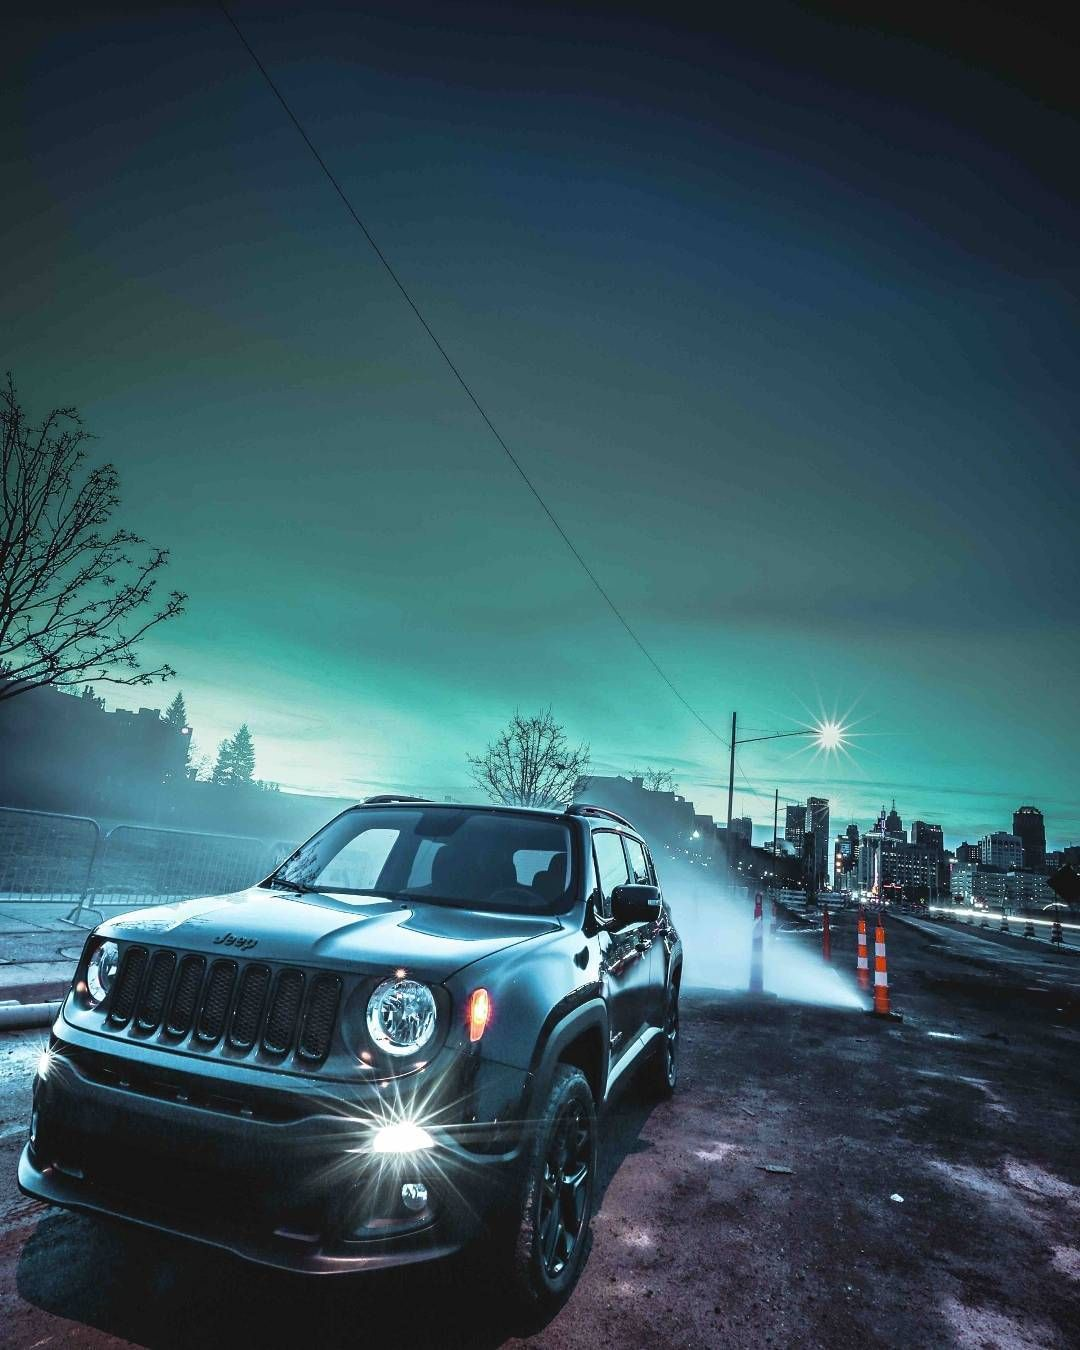 It Conquers Trails And Can Take On The Bad Guys The Jeep Renegade Dawn Of Justice Special Edition Ba Jeep Renegade Jeep Renegade Trailhawk Jeep Lifestyle